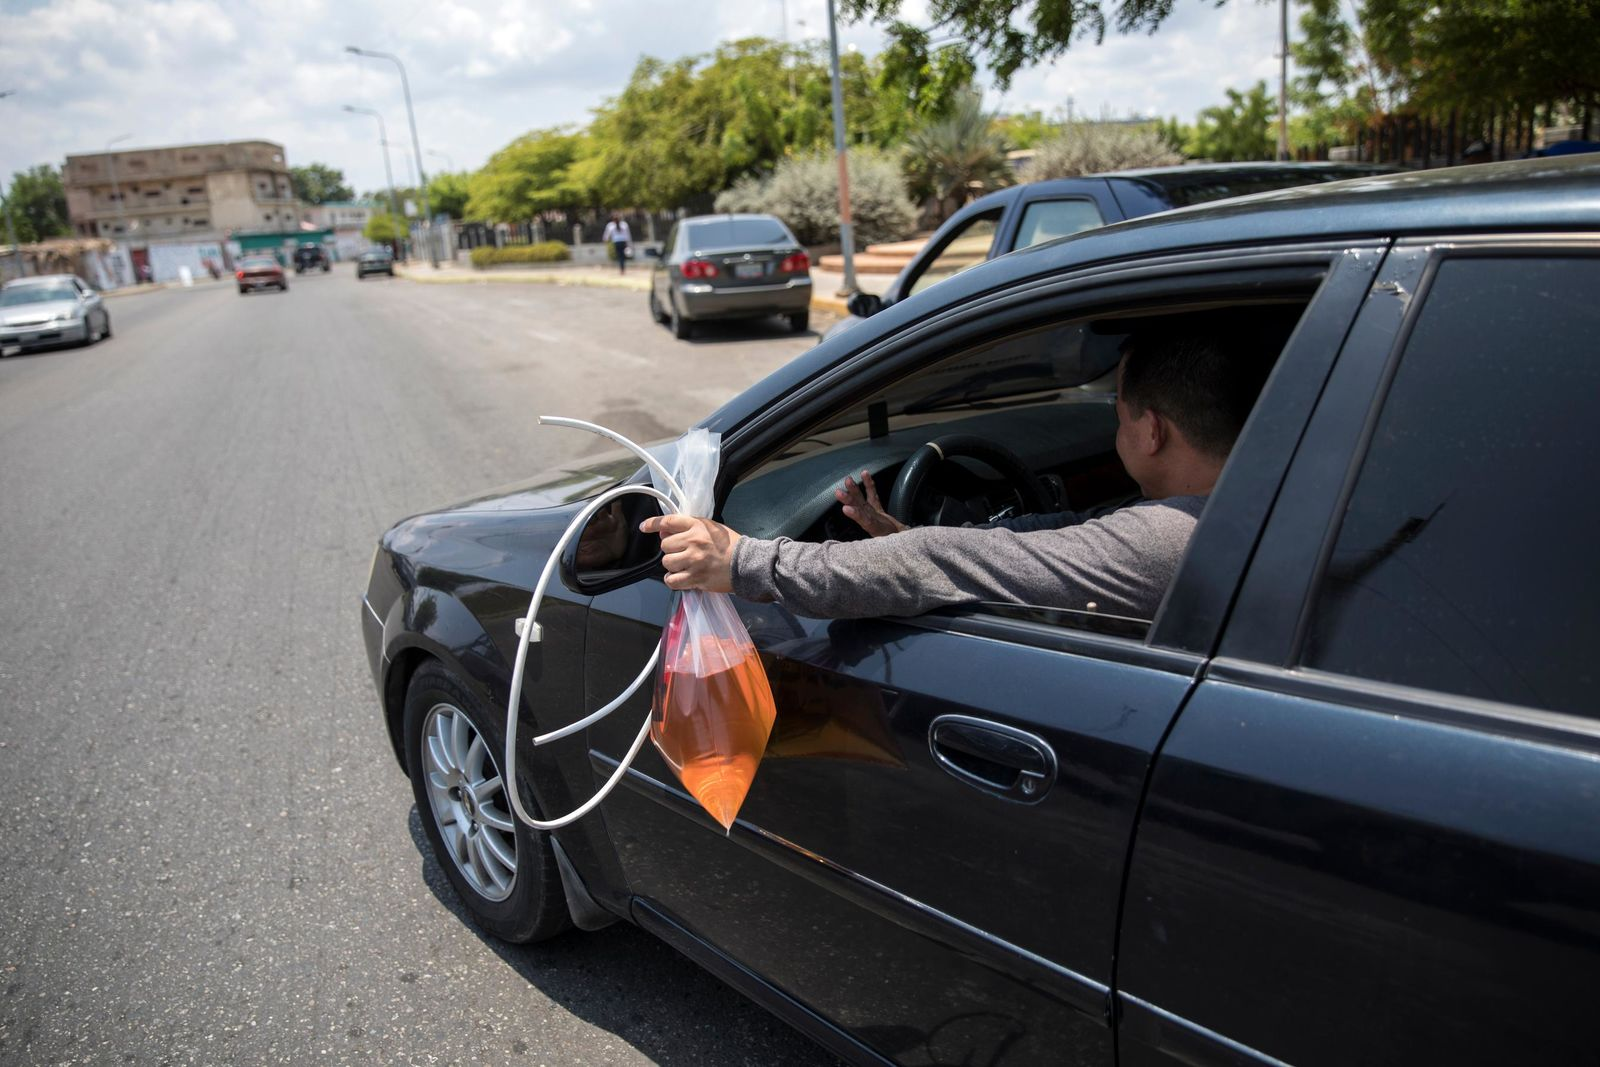 A man leaves a gas station with extra gasoline in a bag, after filling his tank with gas that cost him extra money but saved him waiting in a longer line in Cabimas, Venezuela, Saturday, May 18, 2019. (AP Photo/Rodrigo Abd)